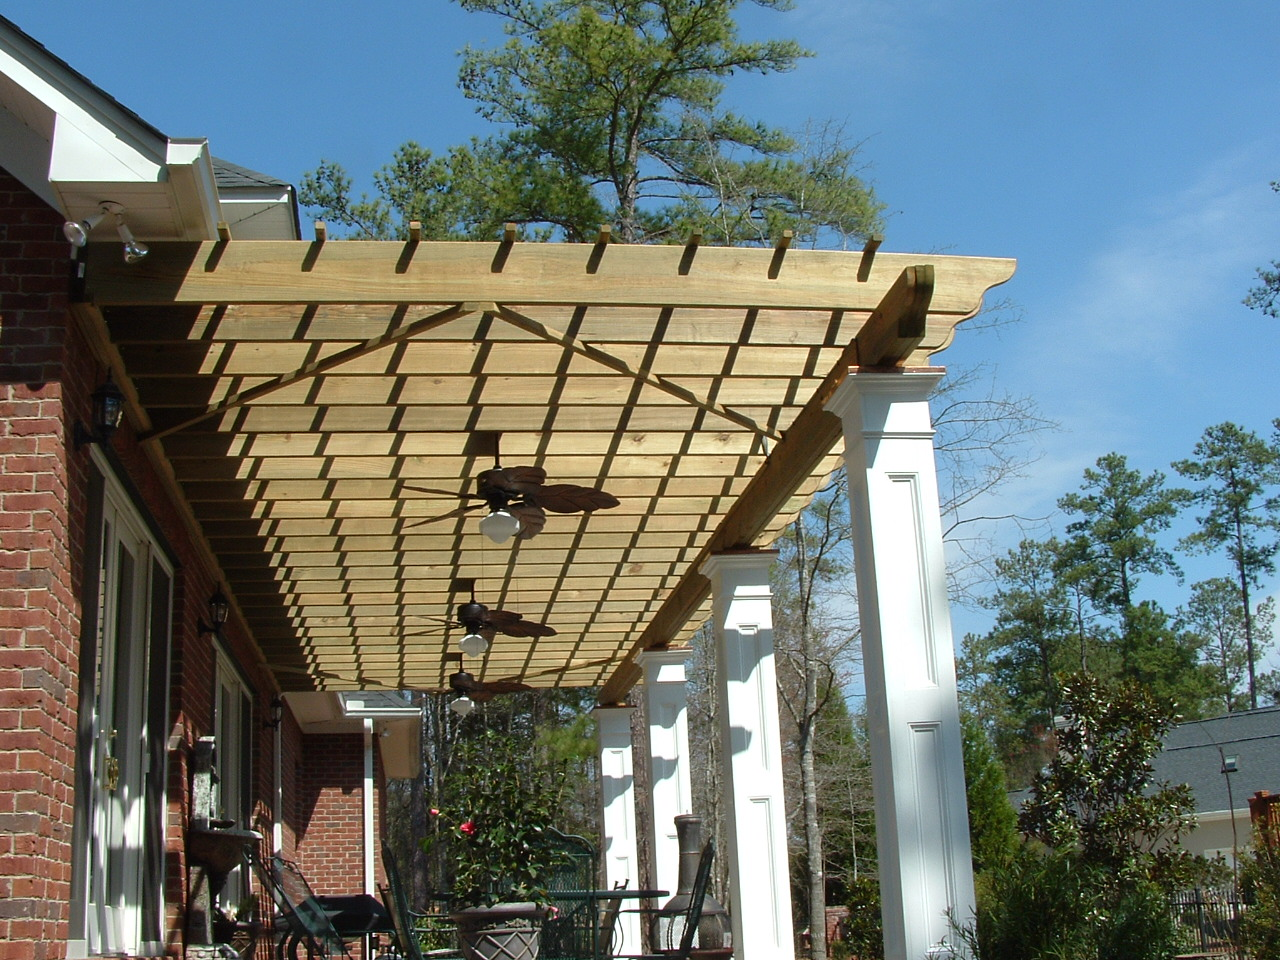 Pergola En Bois Aguirre Design Pictures to pin on Pinterest ~ Pergola Bois Design